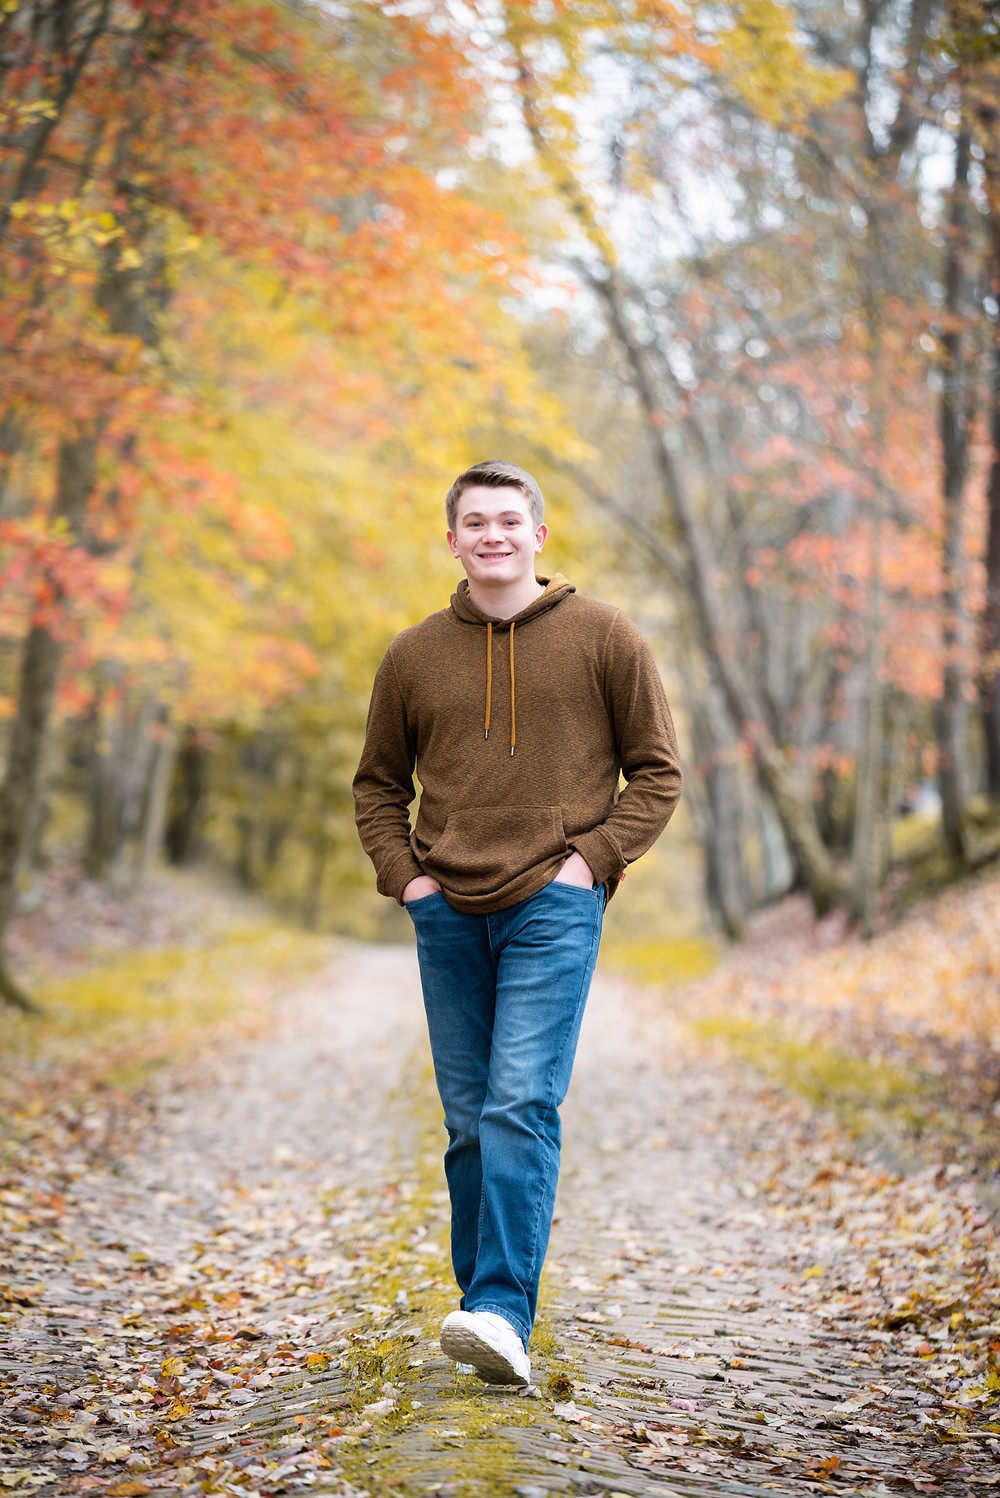 Senior guy walking down a brick path surrounded by fall leaves